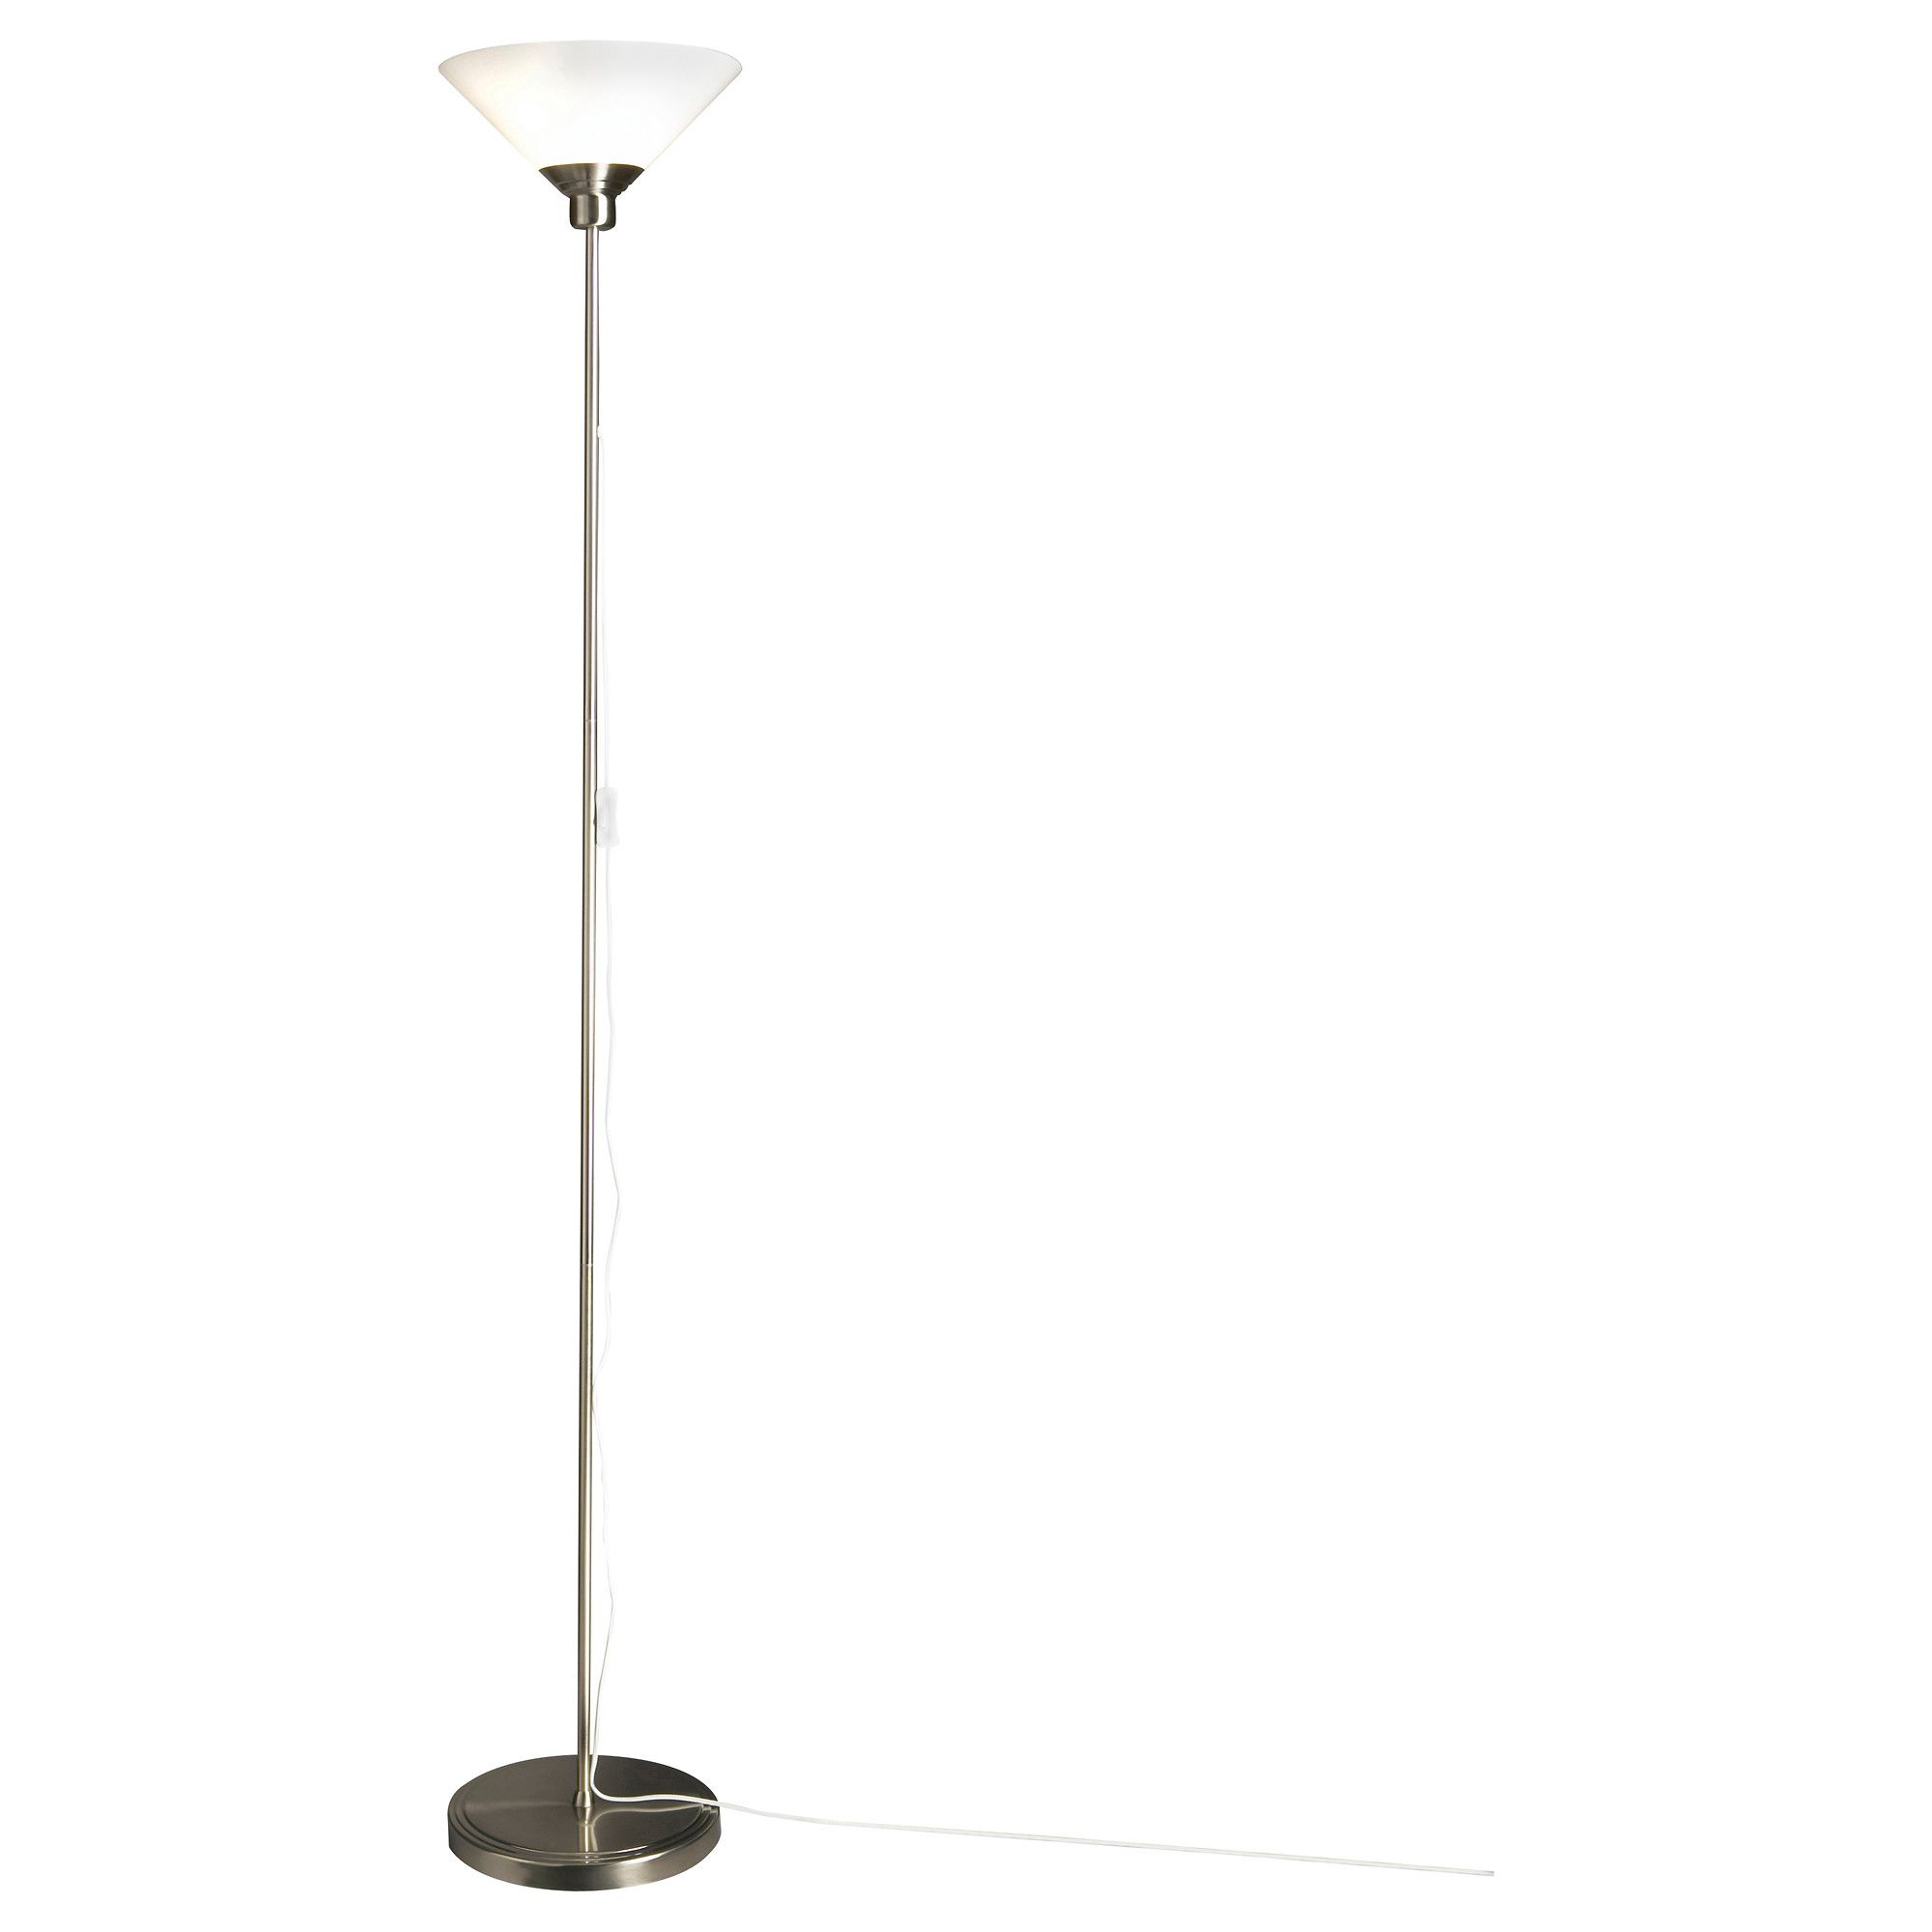 Kroby floor uplight with led bulb nickel plated glass cheap ikea kroby floor uplight with led bulb each shade of mouth blown glass aloadofball Choice Image